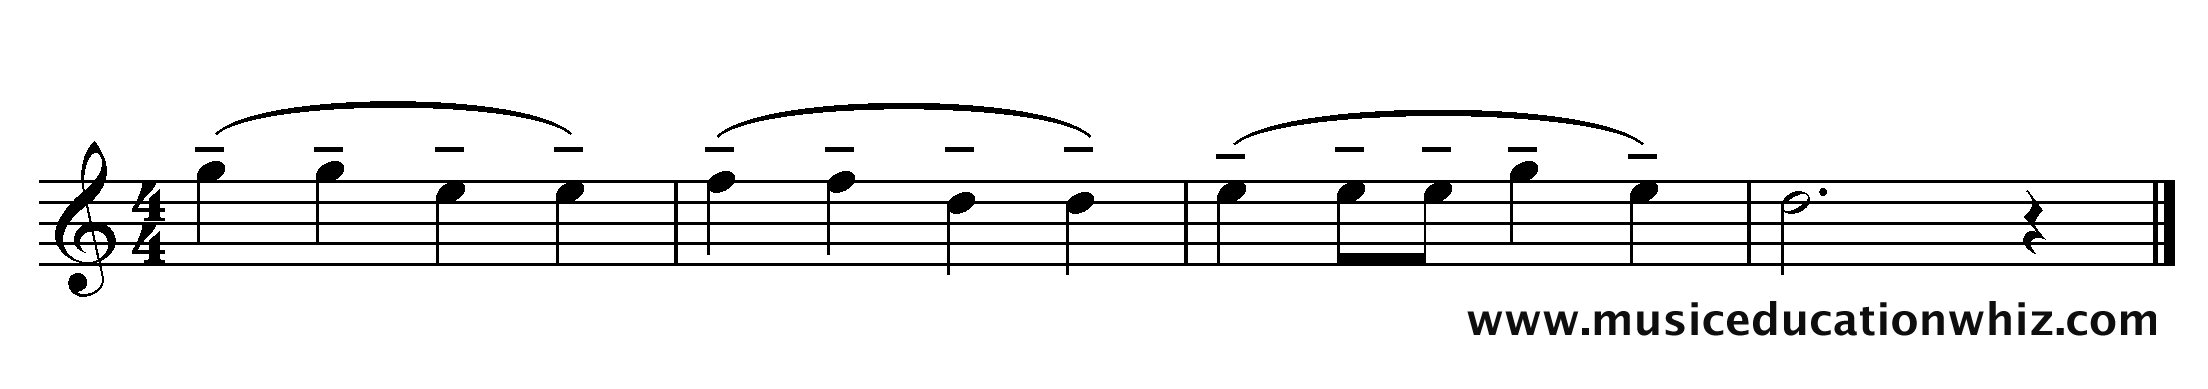 The music for 'Mary Mary Quite Contrary' with mezzo staccato markings (dashes).